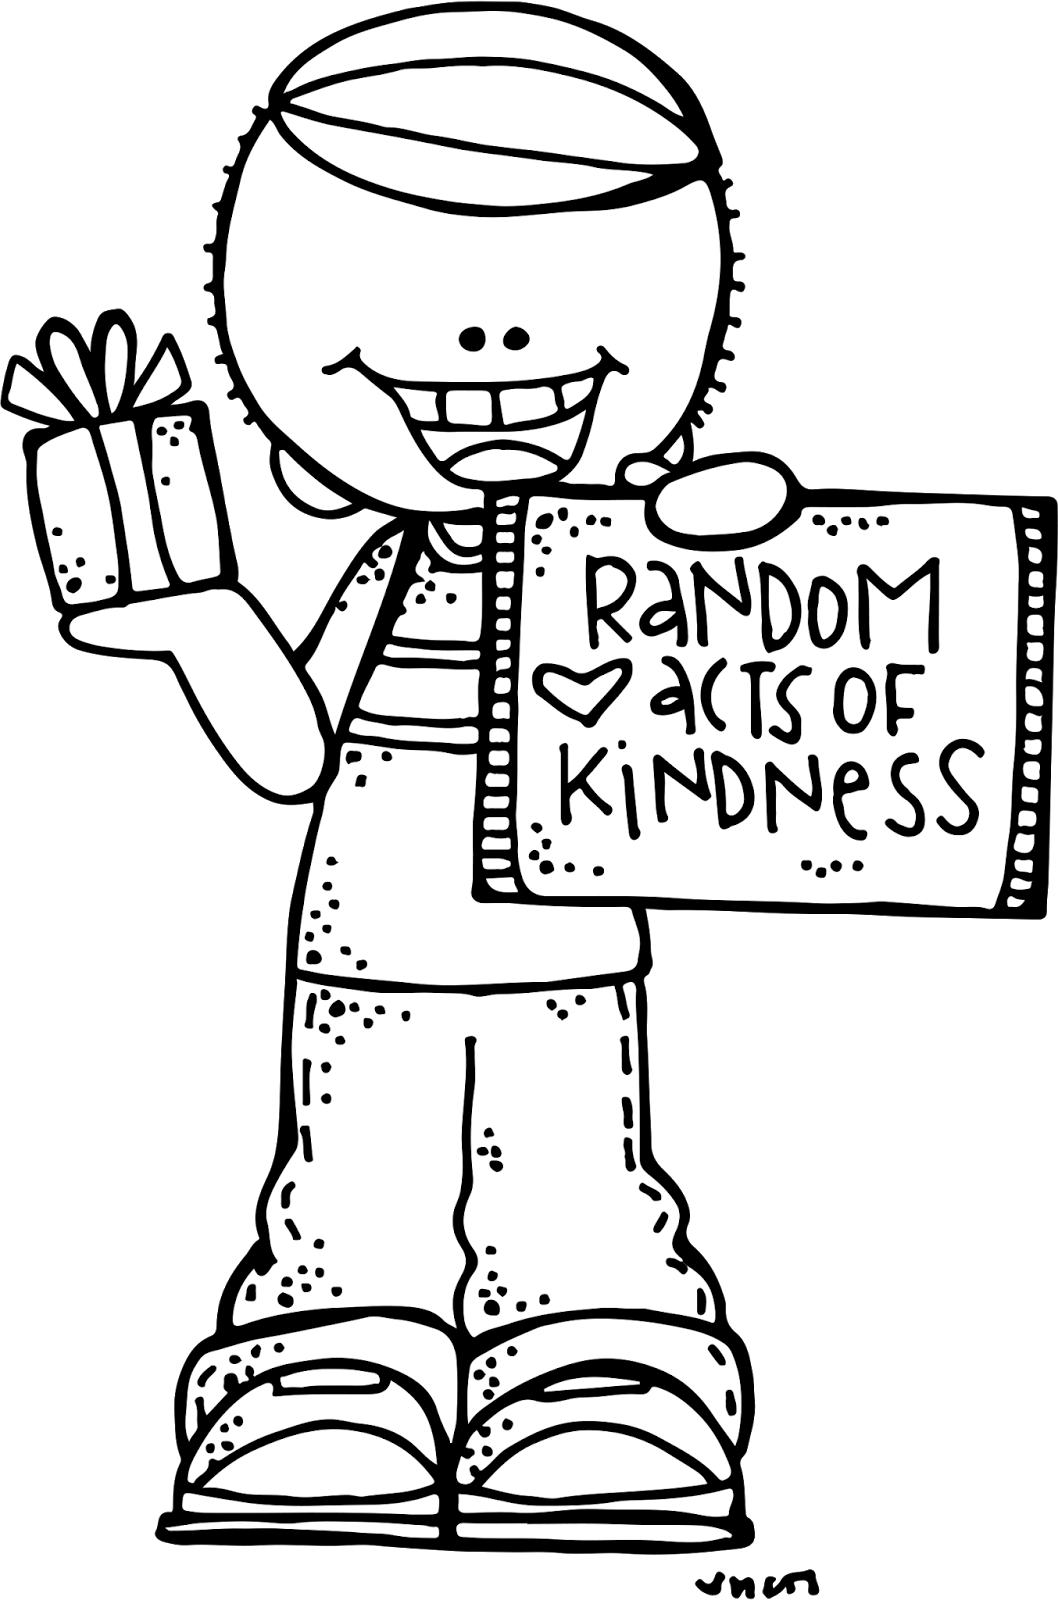 One Little Tiny Act Of Kindness Can Change A Person S Whole Day Let S All Go Out And Be The